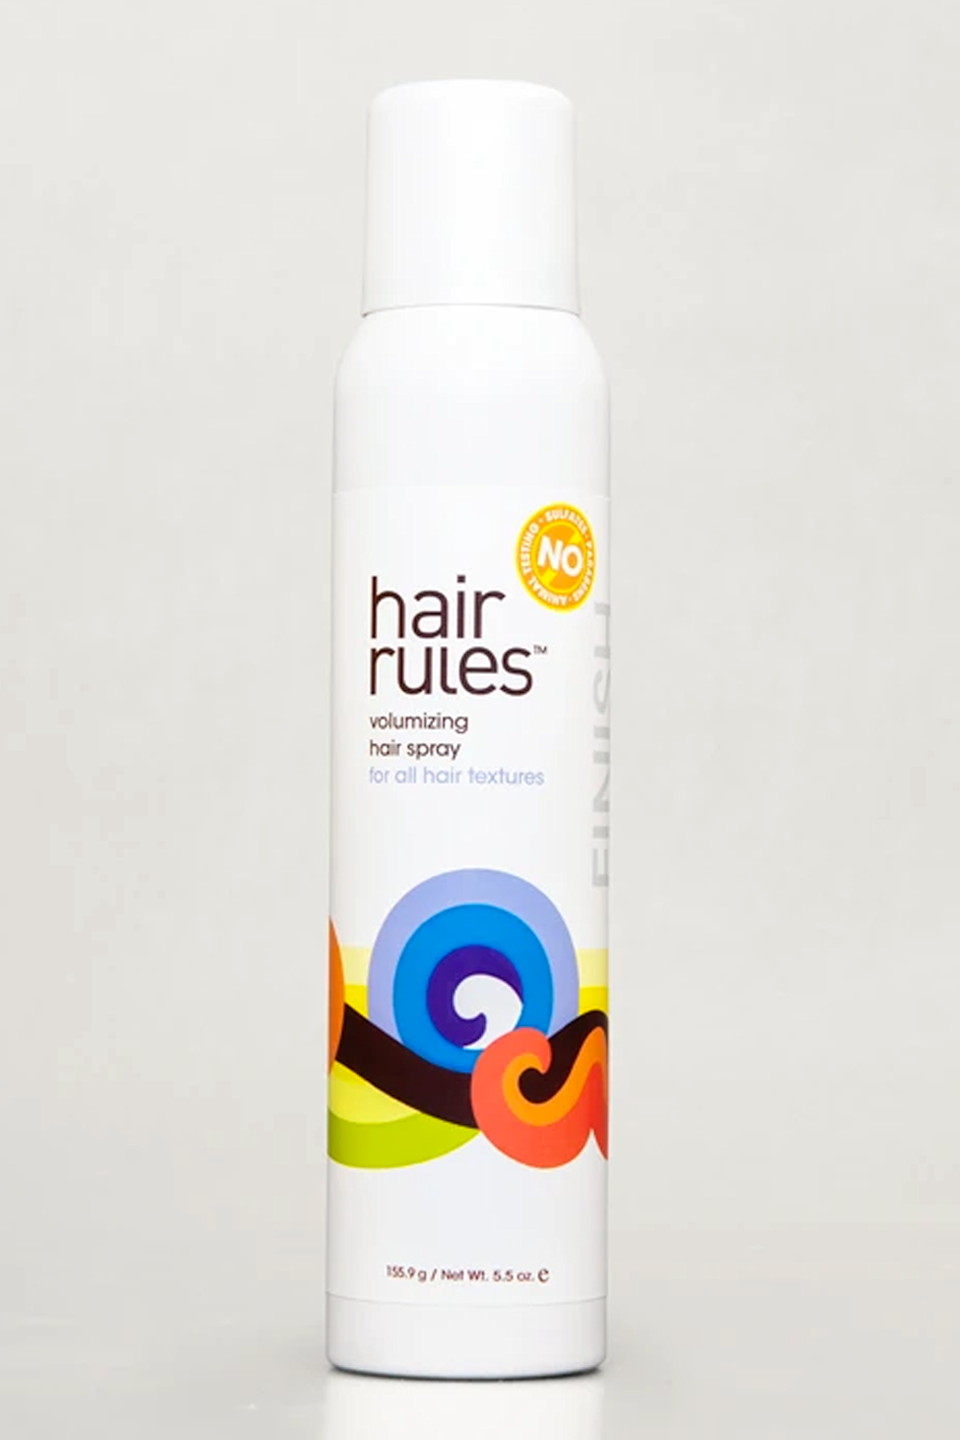 """<p><strong>hair rules</strong></p><p>hairrules.com</p><p><strong>$5.50</strong></p><p><a href=""""https://hairrules.com/products/volumizing-hair-spray/"""" rel=""""nofollow noopener"""" target=""""_blank"""" data-ylk=""""slk:Shop Now"""" class=""""link rapid-noclick-resp"""">Shop Now</a></p><p>You'd think <a href=""""https://www.cosmopolitan.com/style-beauty/beauty/g25843731/best-hairspray/"""" rel=""""nofollow noopener"""" target=""""_blank"""" data-ylk=""""slk:hairspray"""" class=""""link rapid-noclick-resp"""">hairspray</a> would automatically hold the volume in your hair (isn't that <em>kinda </em>the main reason most people use it?), but <strong>a too-strong formula will actually weigh your hair down instead of lifting it up</strong>. Enter: this dry-mist formula that has a super-fine spray (so no heavy, sticky droplets) to help freeze the volume in your hair without feeling like a helmet.</p>"""